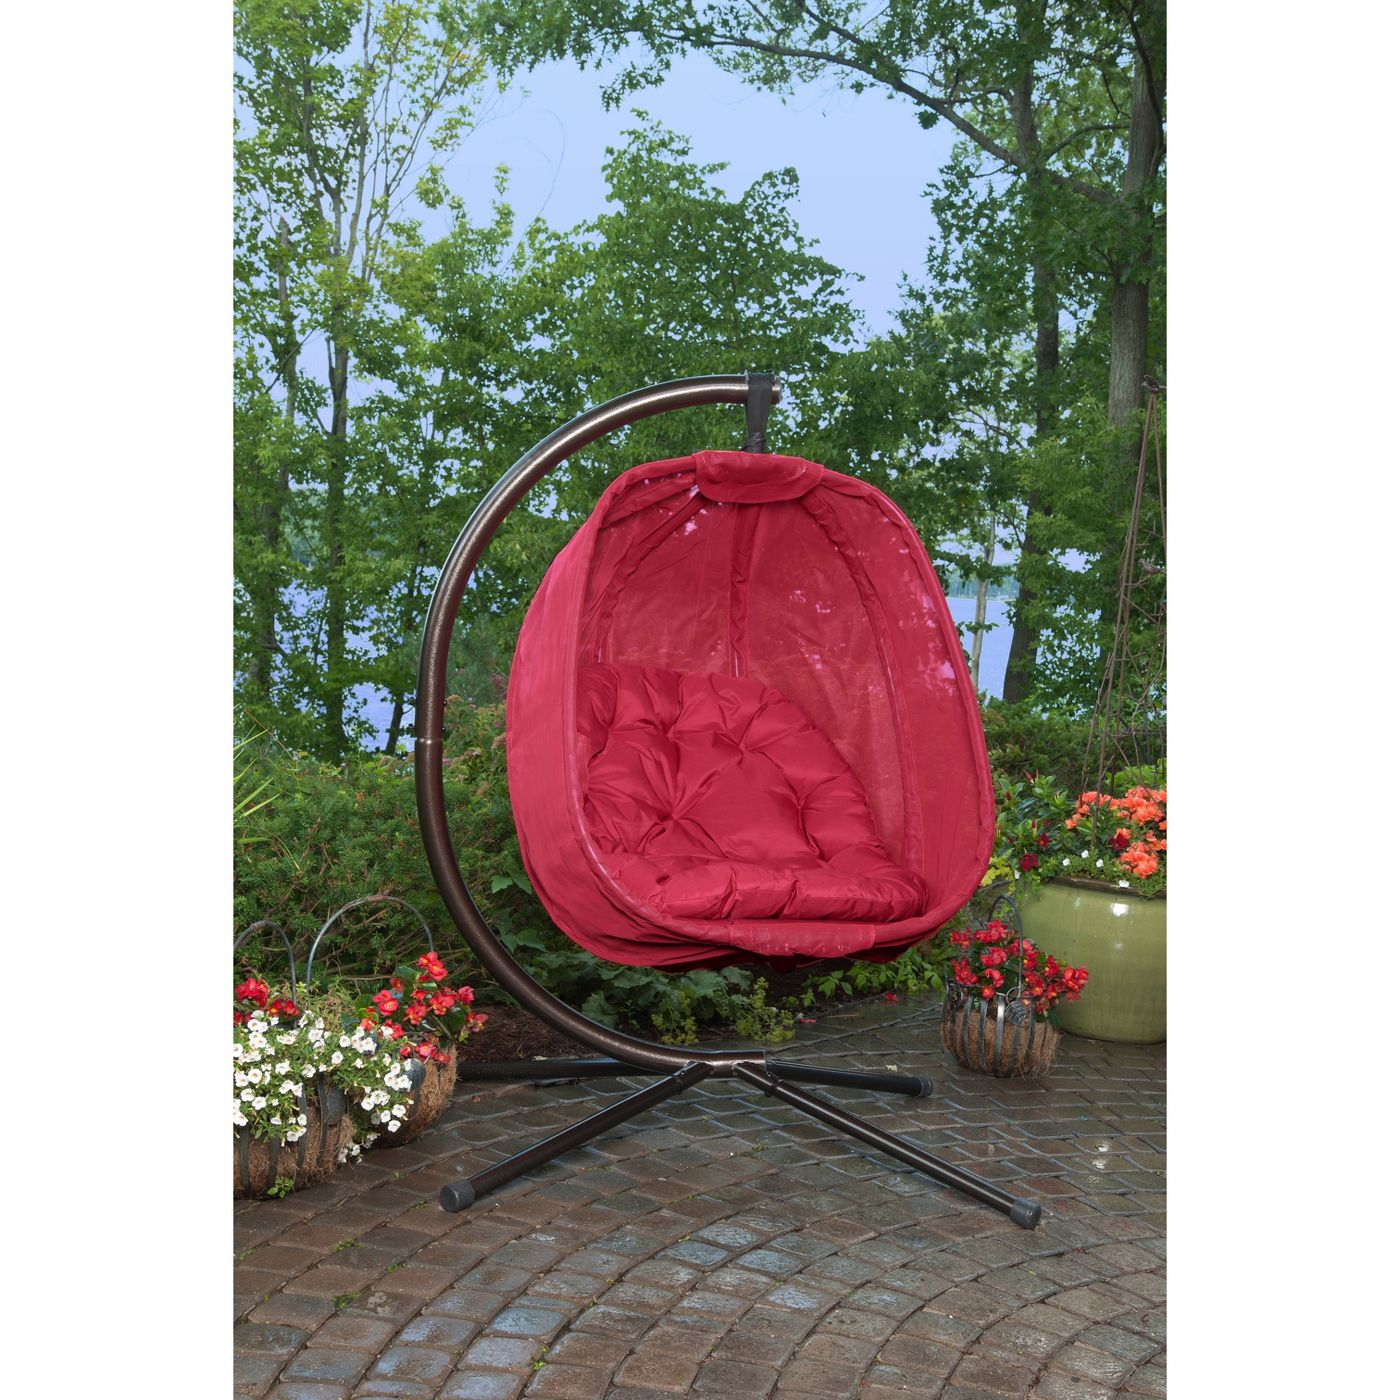 Hanging Egg Chair with Stand - FlowerHouse - image 2 of 2